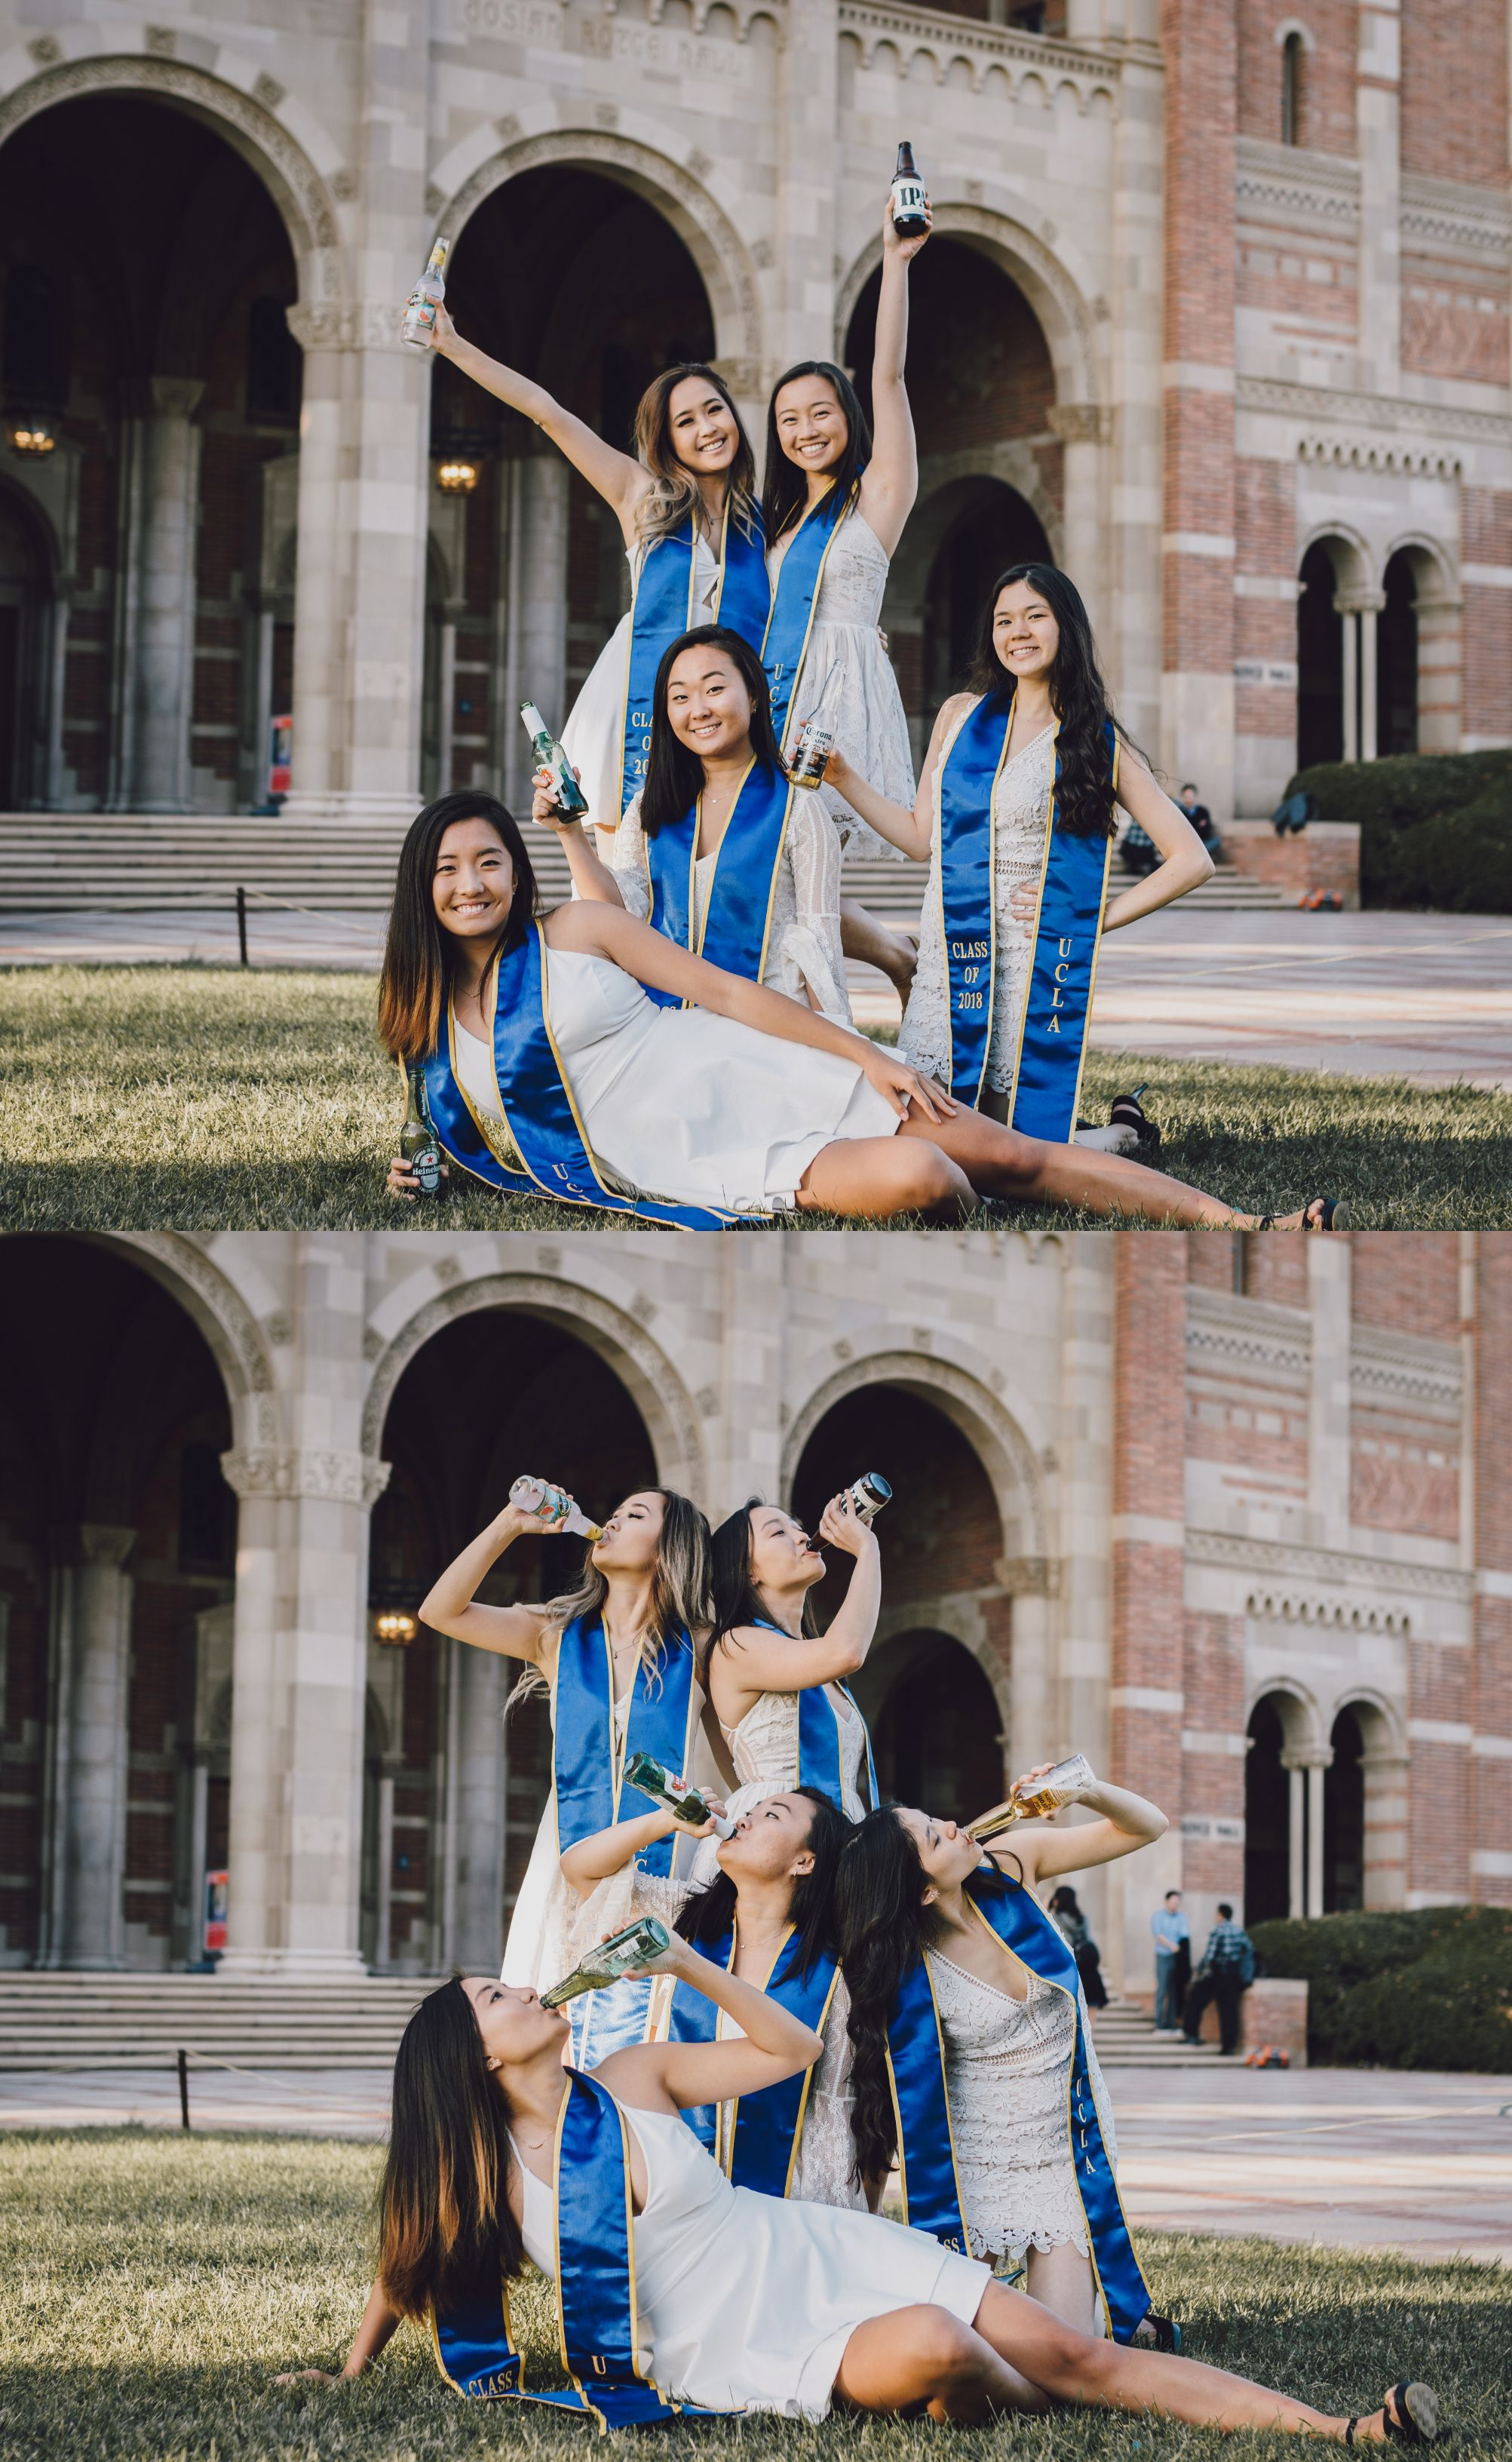 Ucla Graduation Portraits Inspiration Pose Outfit Ideas Los Angeles California In 2020 Graduation Portraits Southern California Photographer Portrait